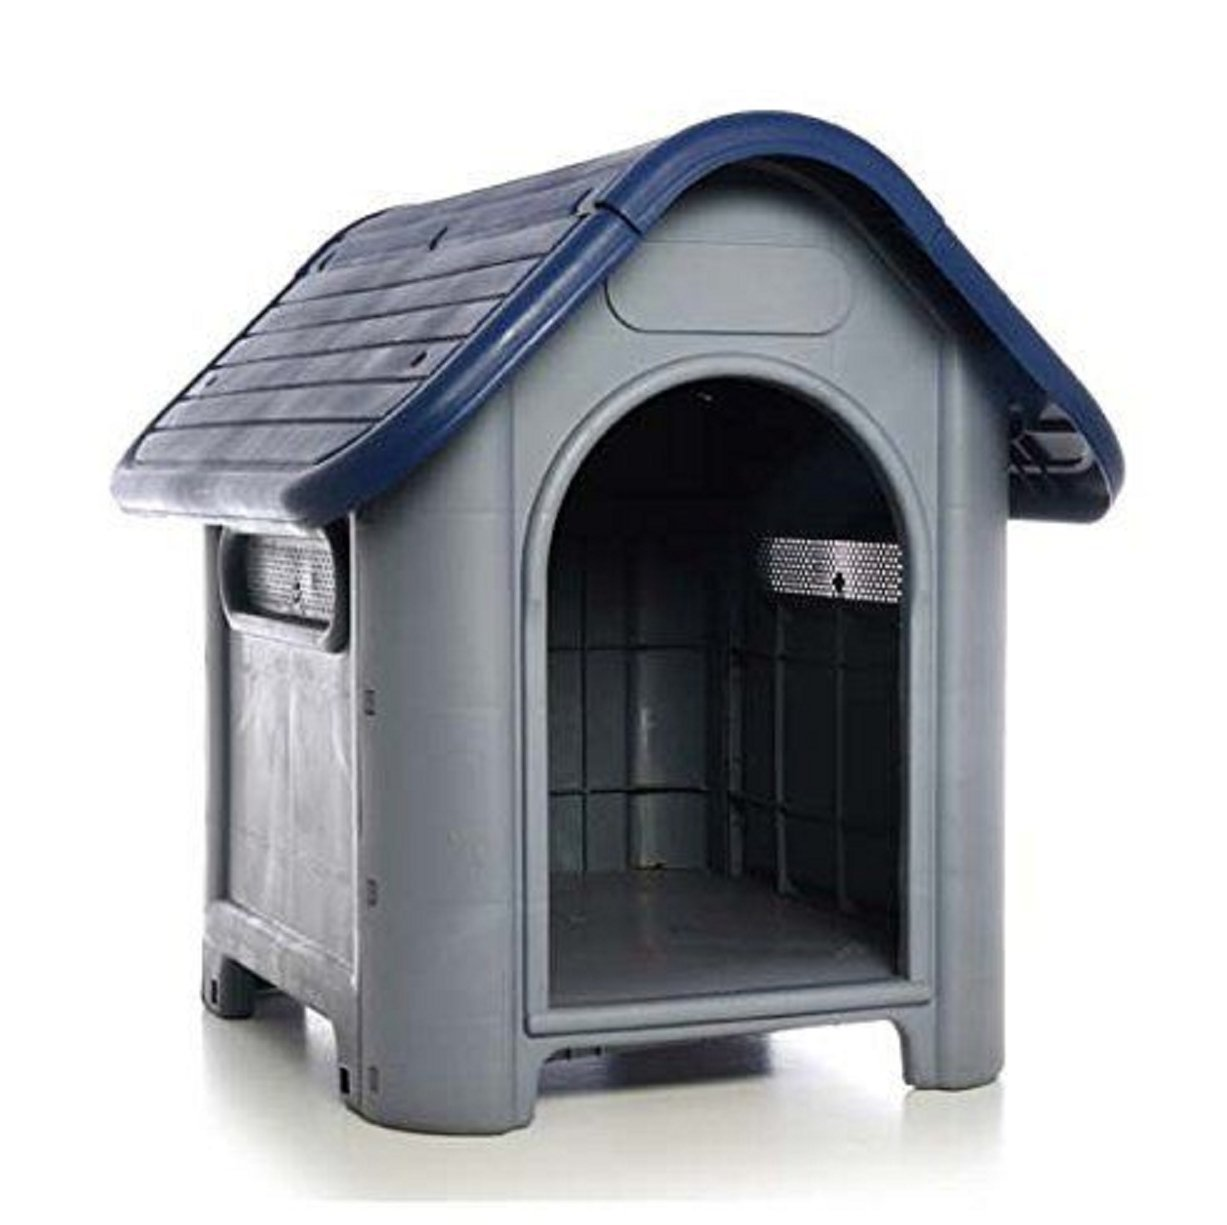 Outdoor Dog House Small Large Small to Medium Pet All Weather Doghouse Puppy Shelter NIB